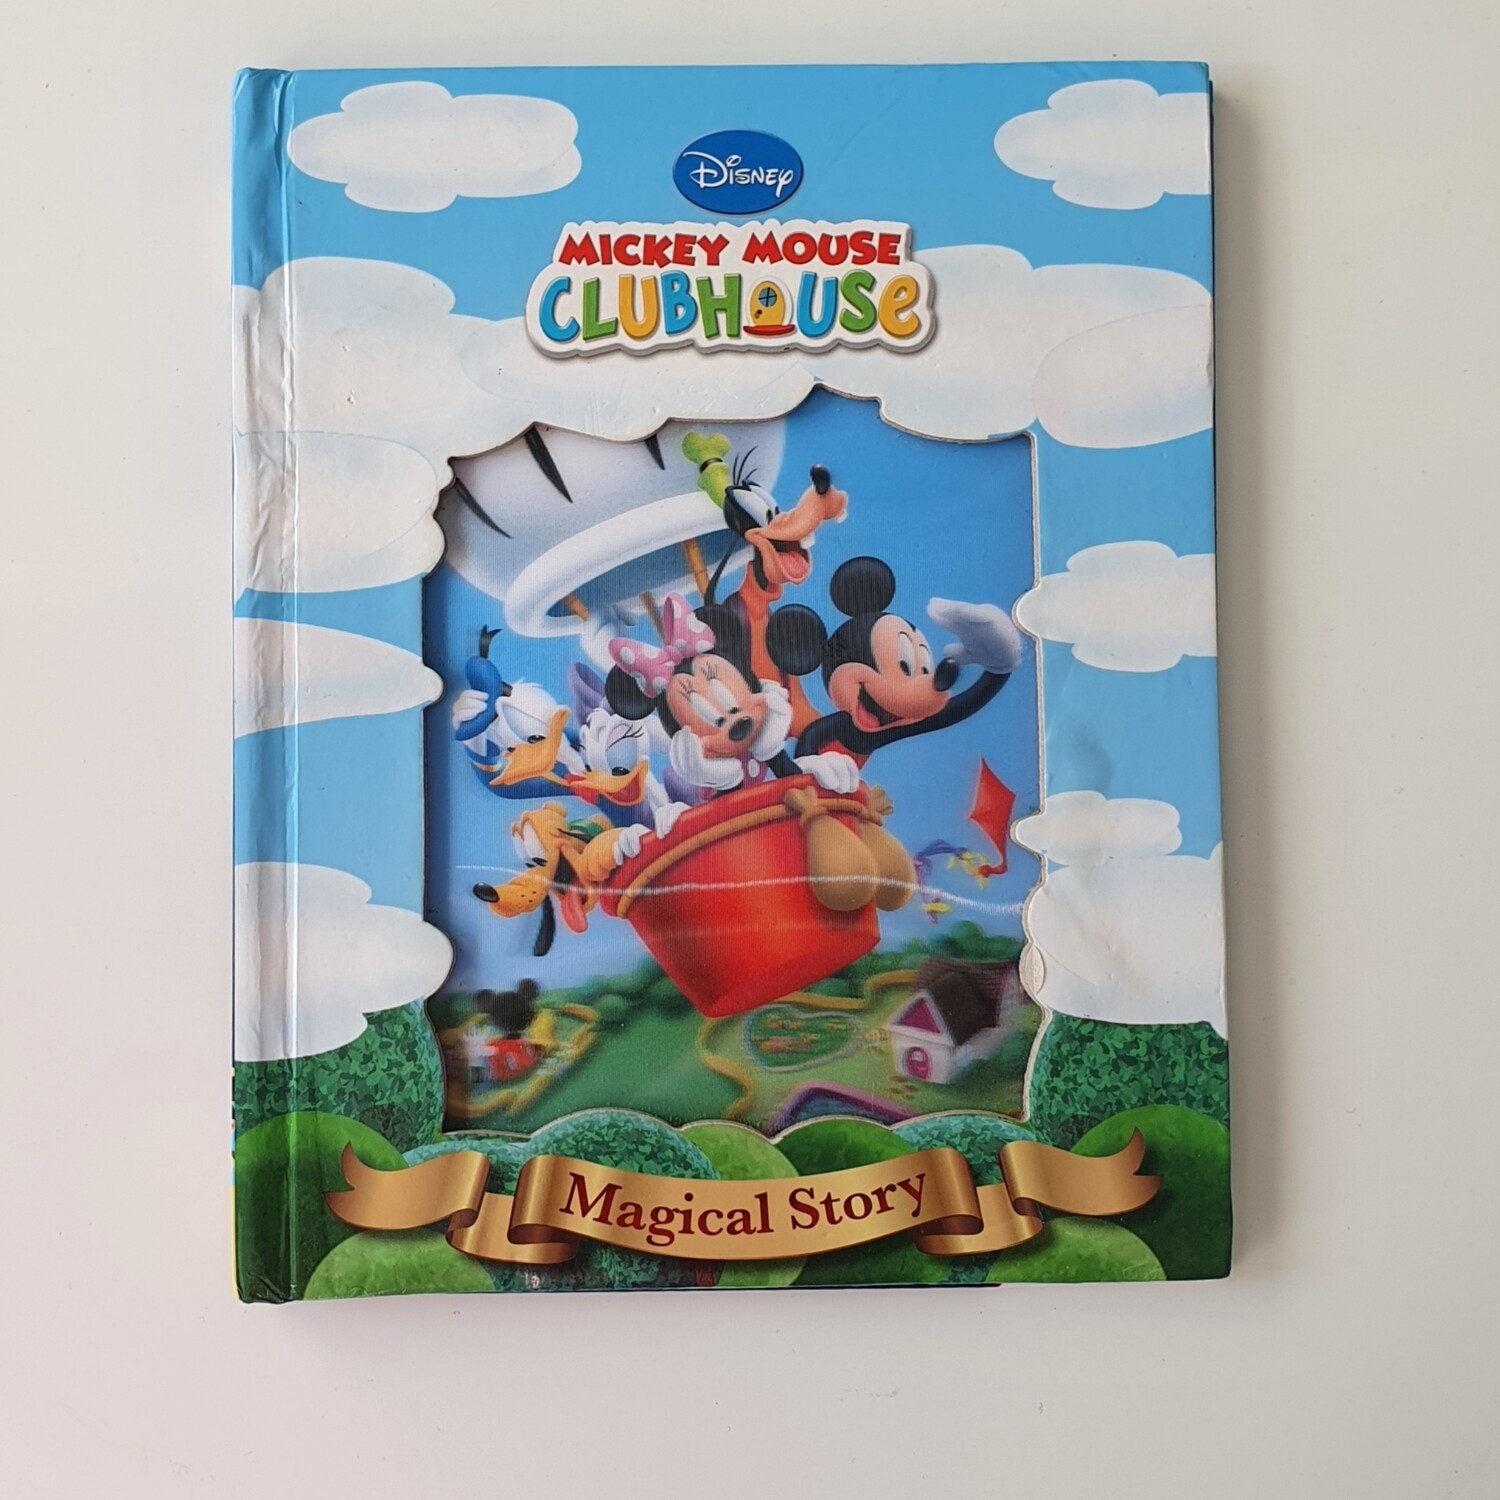 Mickey Mouse Clubhouse Notebook - no original pages